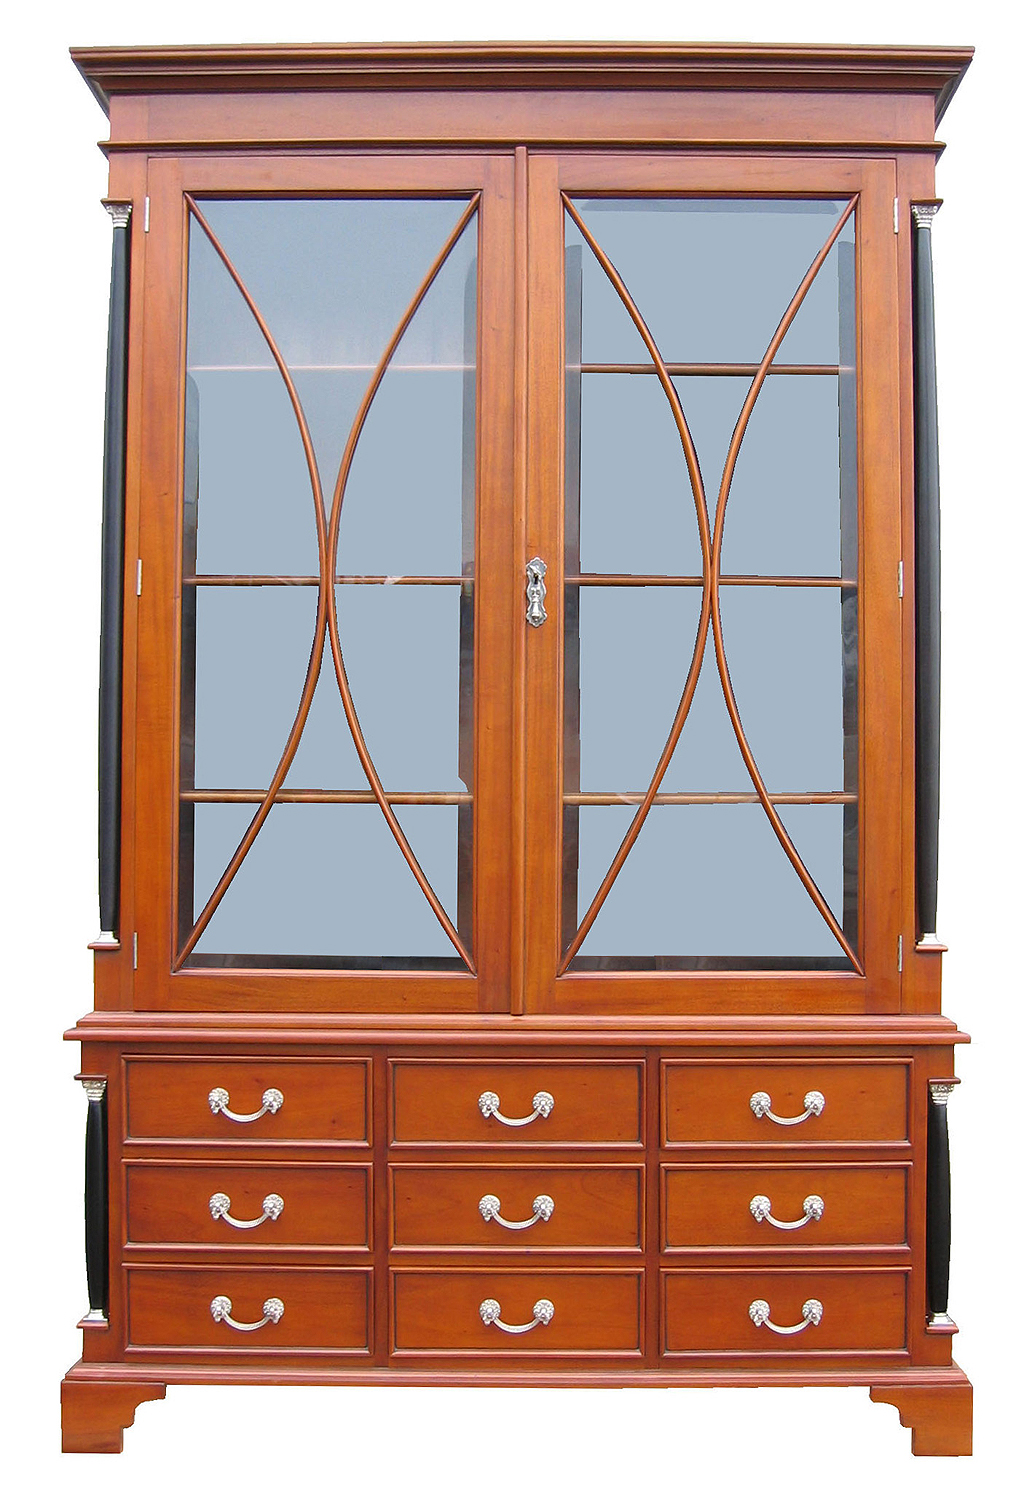 biedermeier vitrine b cherschrank antik kirsche m bel. Black Bedroom Furniture Sets. Home Design Ideas